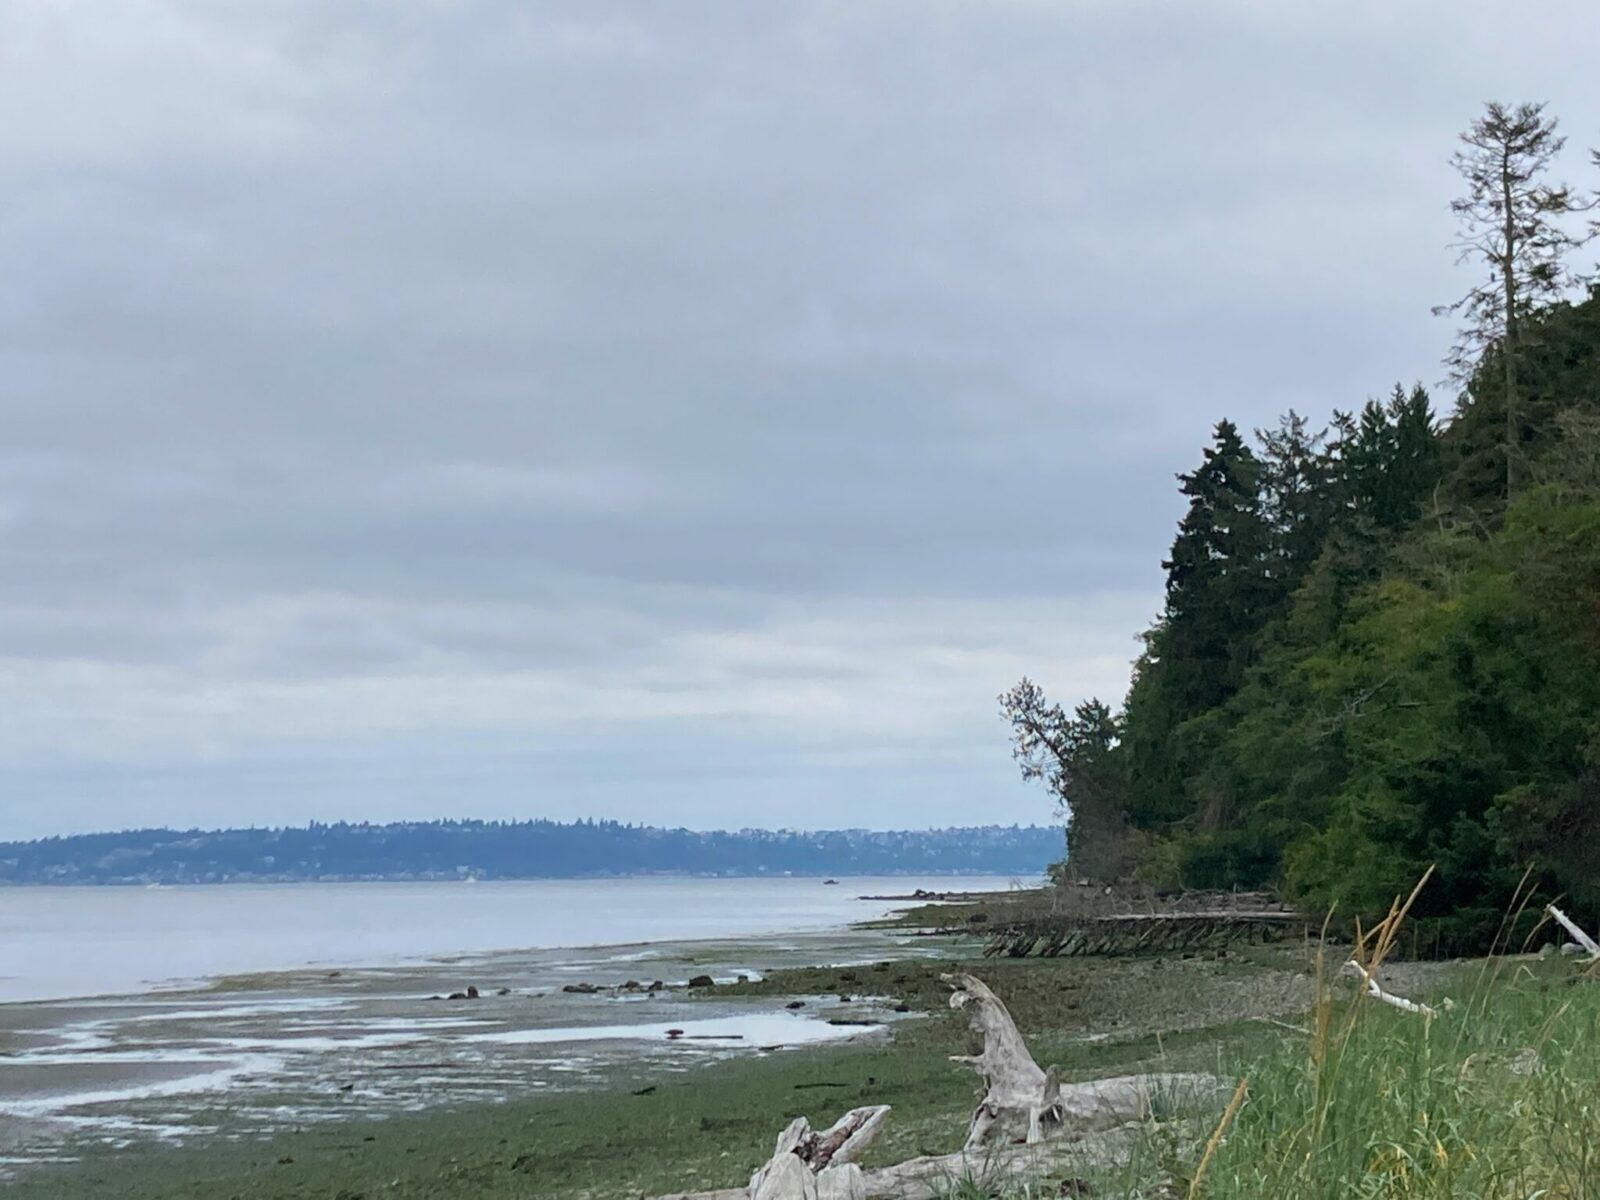 The remote beach on the west side of Blake Island State Park. There are forests up to the edge of the beach and seaweed and driftwood on a rocky beach at low tide. Gray water and distant land with trees and buildings are in the background